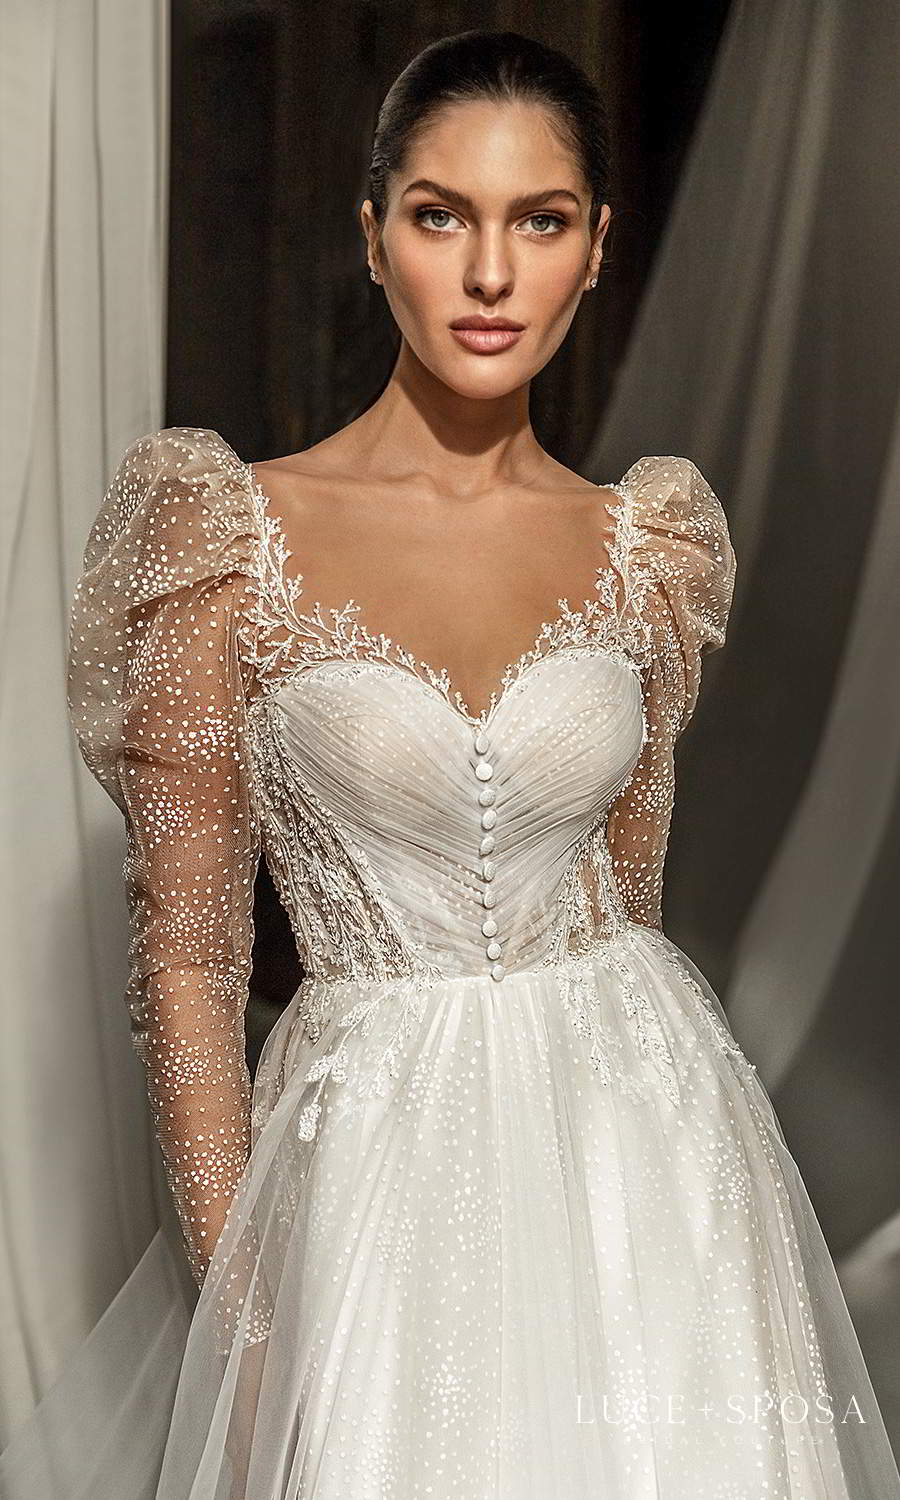 luce sposa 2021 shades of couture bridal sheer long puff sleeves sweetheart neckline ruched bodice a line ball gown wedding dress chapel train (mia) zv